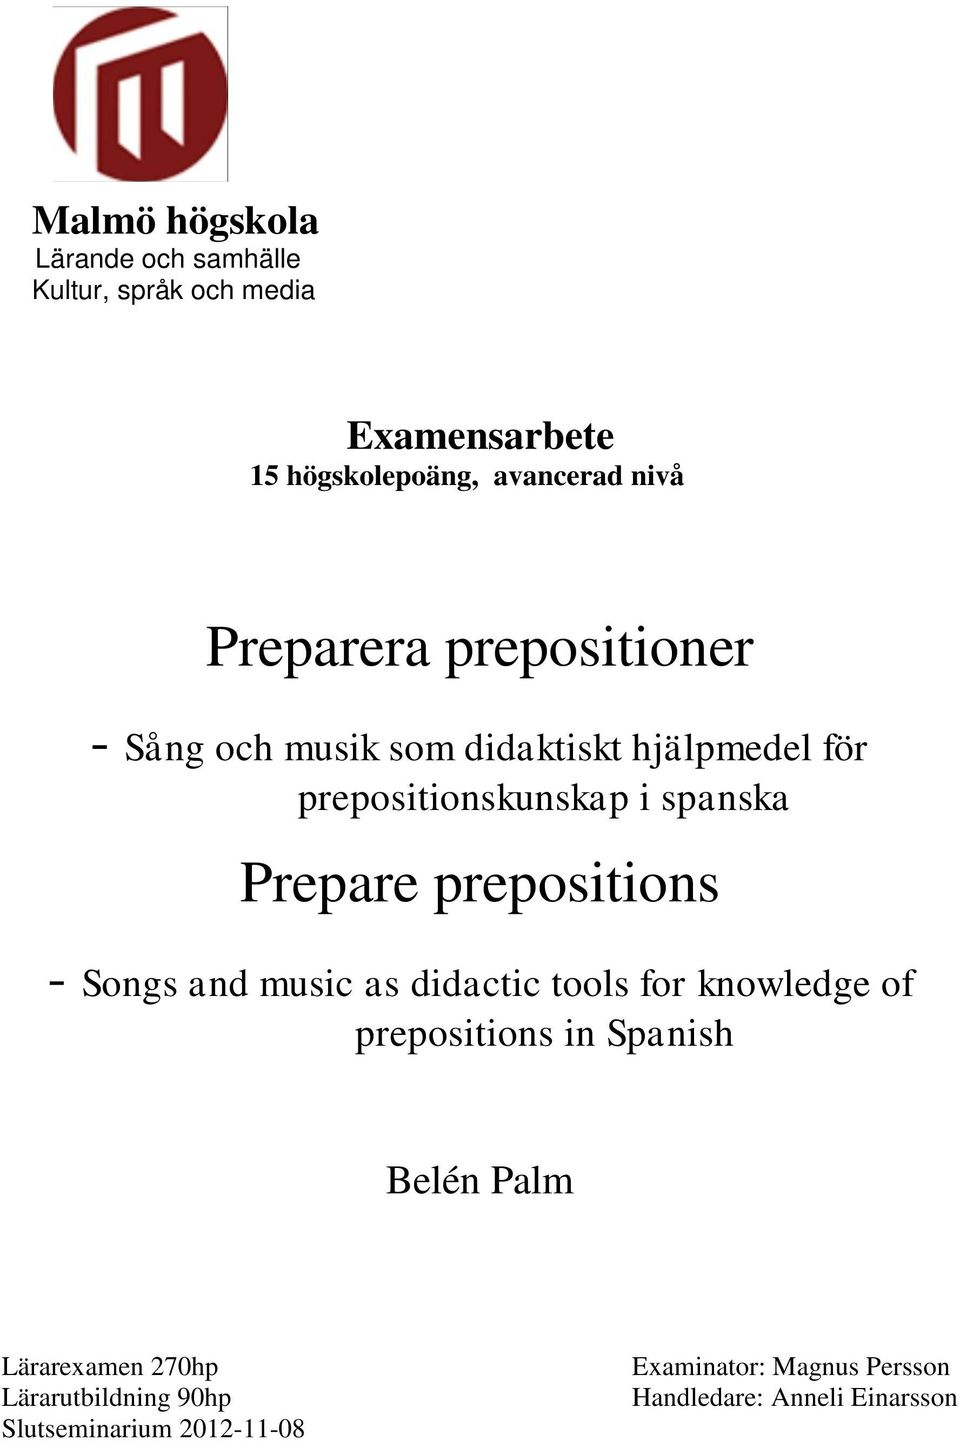 prepositions - Songs and music as didactic tools for knowledge of prepositions in Spanish Belén Palm